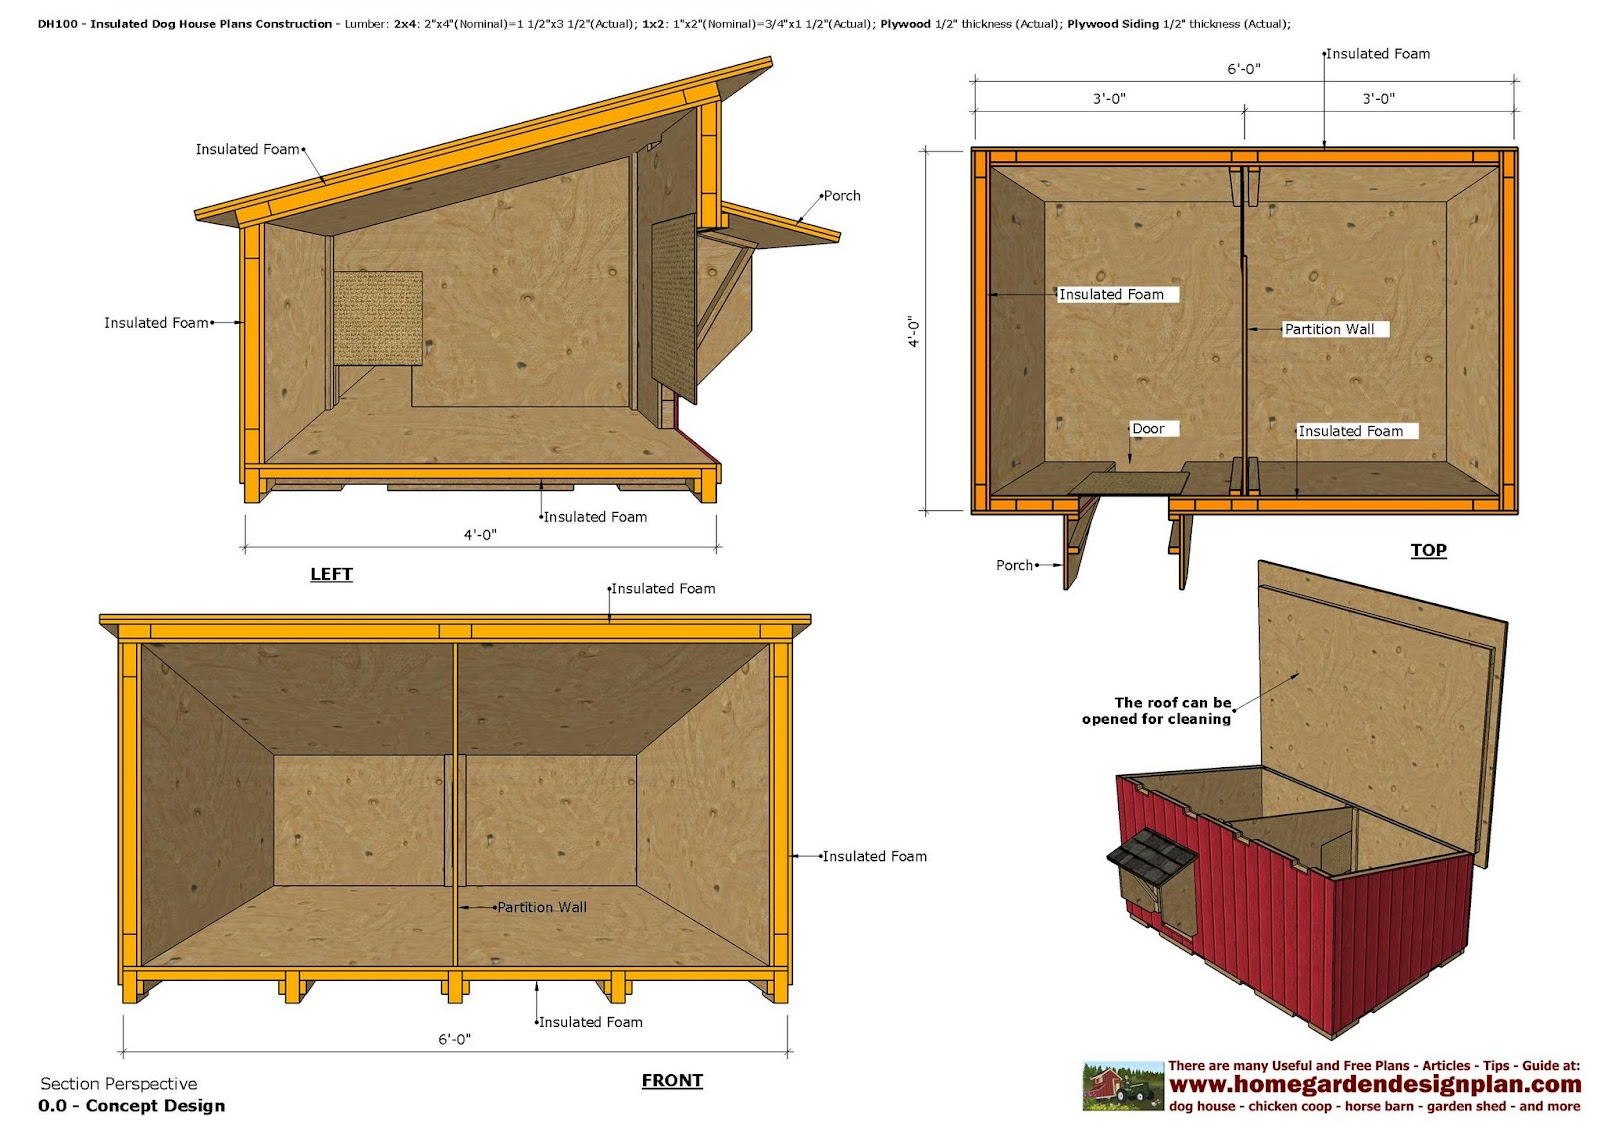 Home Garden Plans Dh100 Insulated Dog House Plans Dog